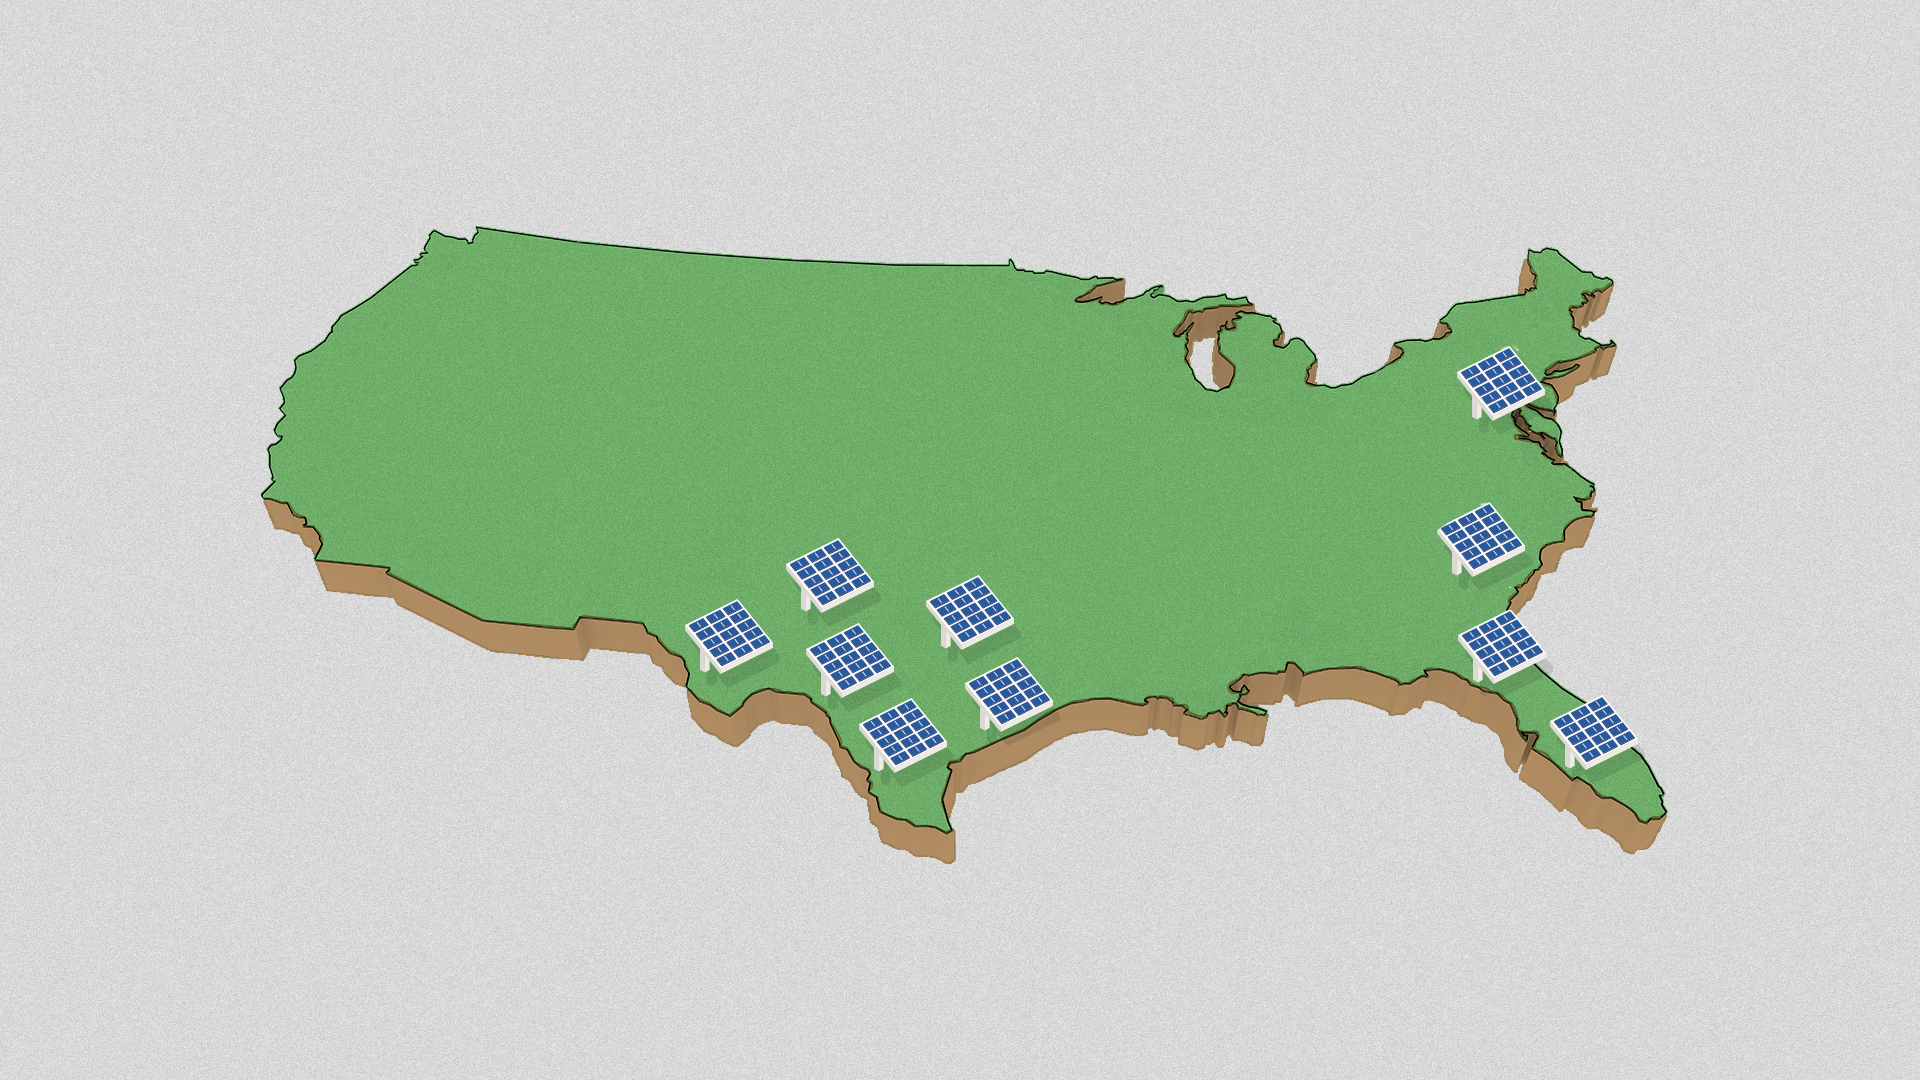 Illustration of the United States with solar panels clustered around the Texas, Florida, South Carolina and Maryland.